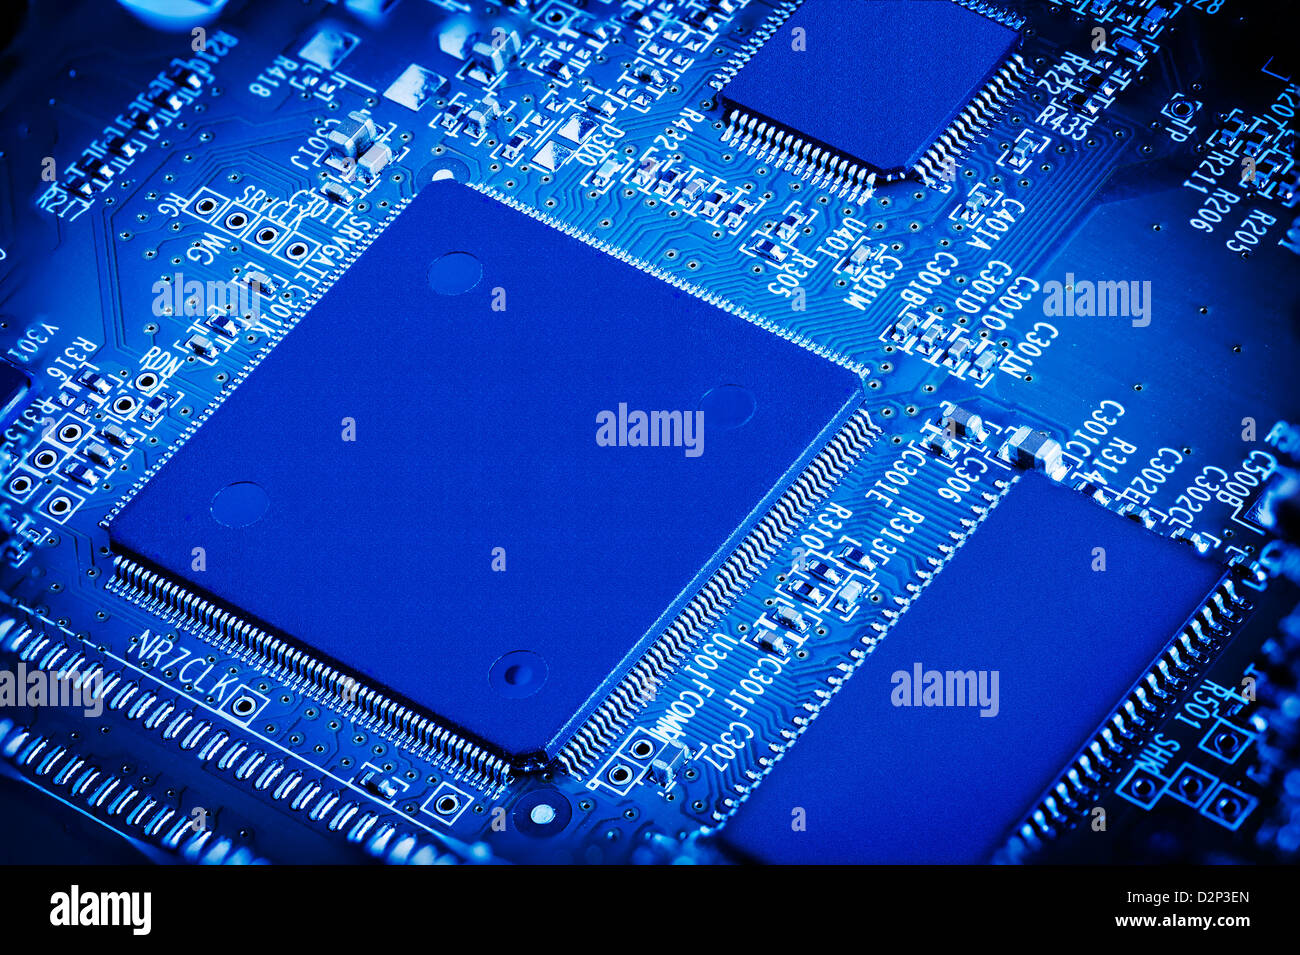 Printed Circuit Stock Photos Images Alamy Boardpcb Mass Production Board Product On Microchip Blue Pcb Close Up Macro Detail Image